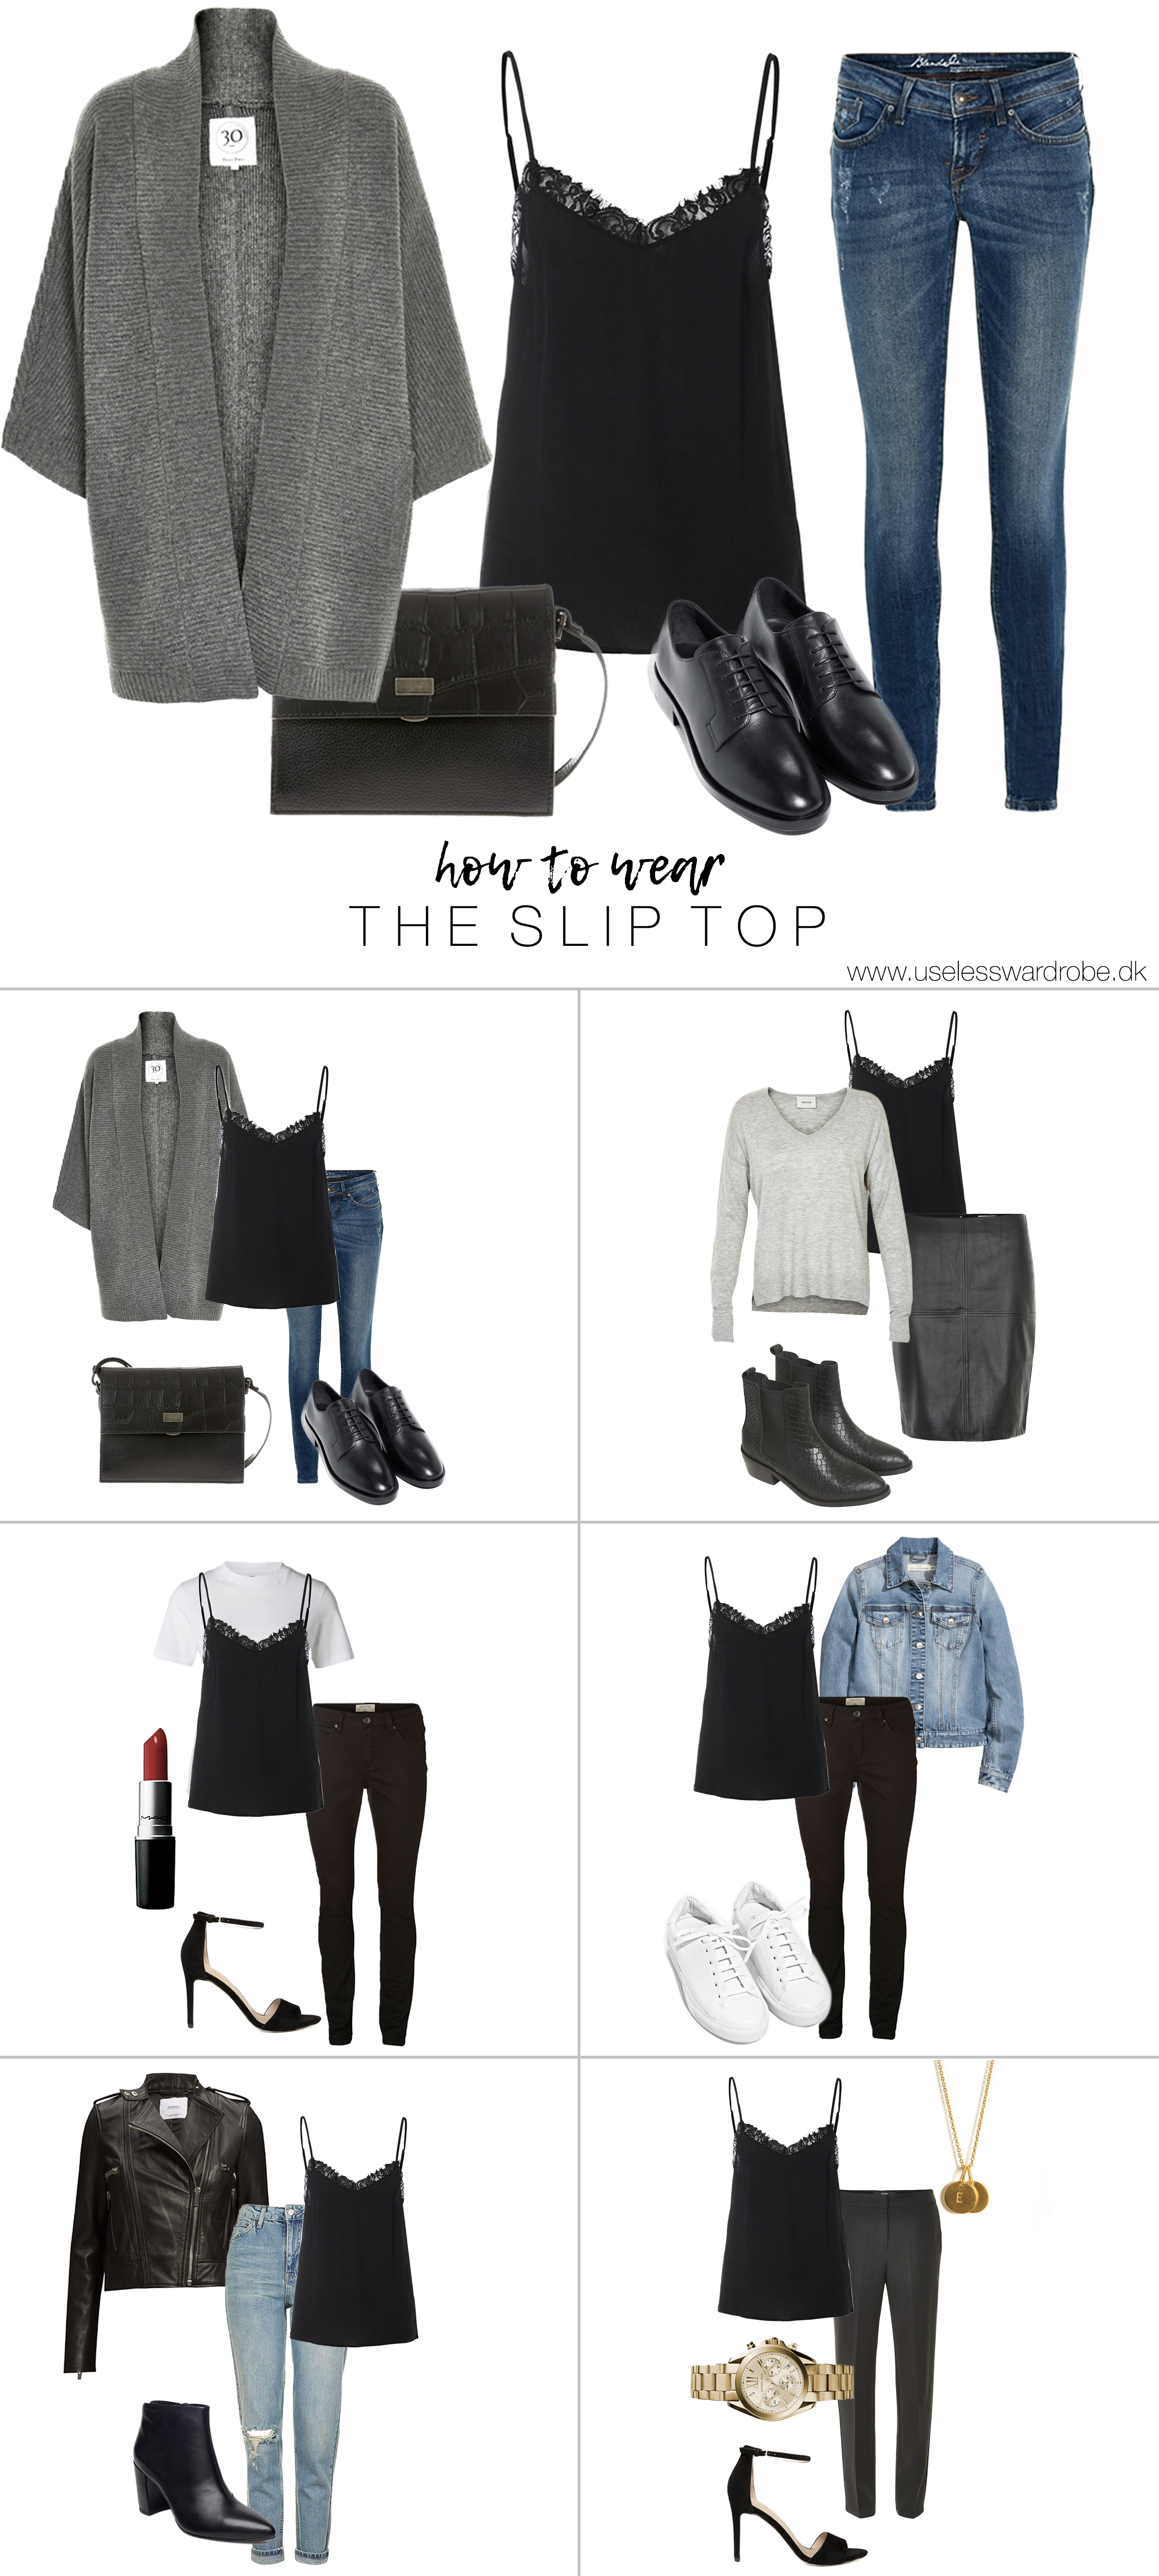 how-to-wear-the-slip-top